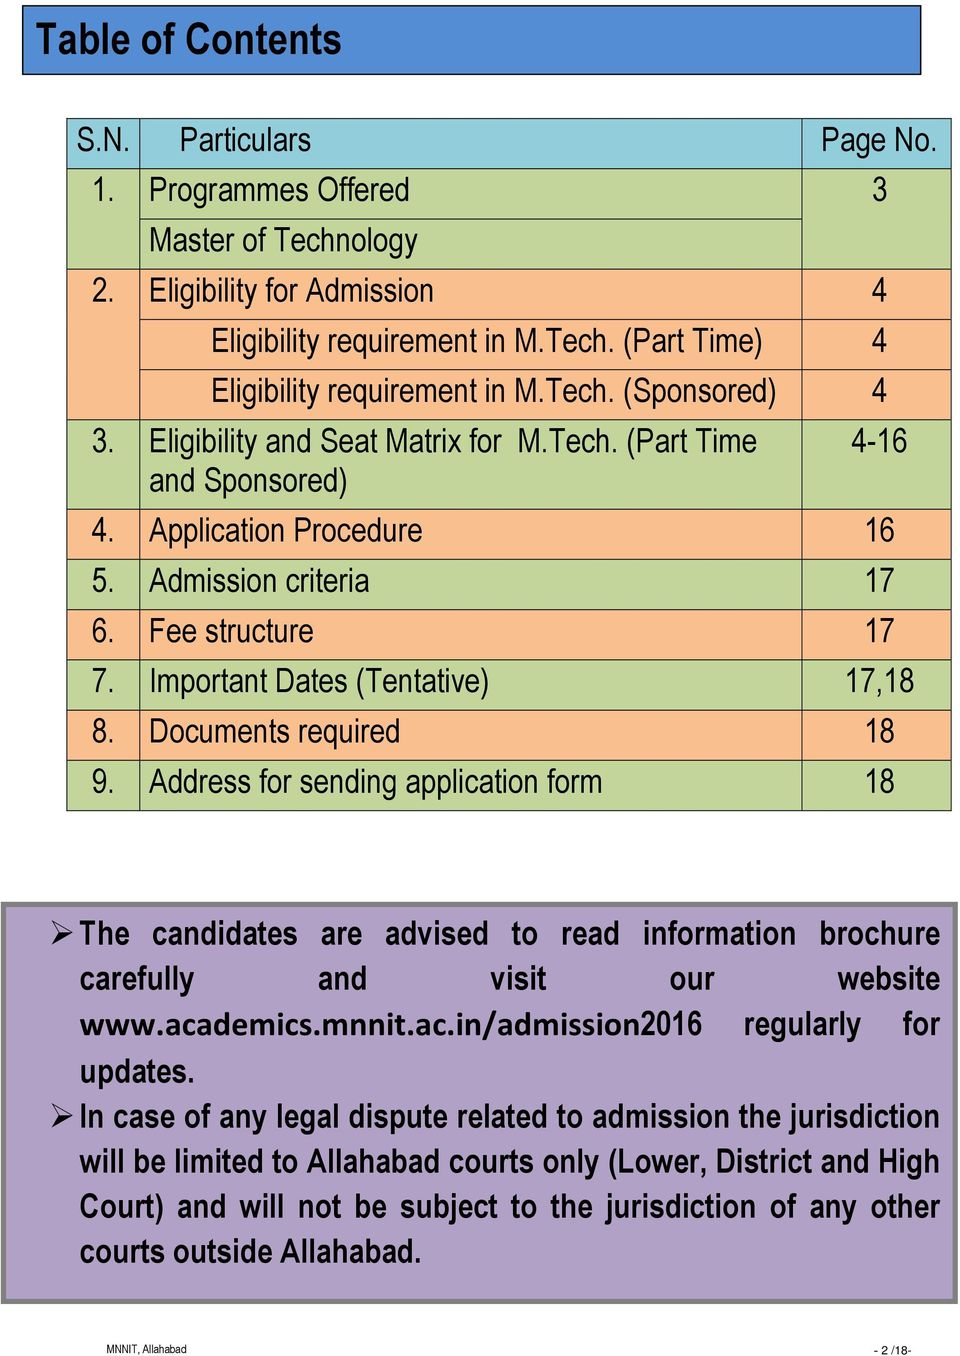 Important Dates (Tentative) 17,18 8. Documents required 18 9. Address for sending application form 18 The candidates are advised to read information brochure carefully and visit our website www.